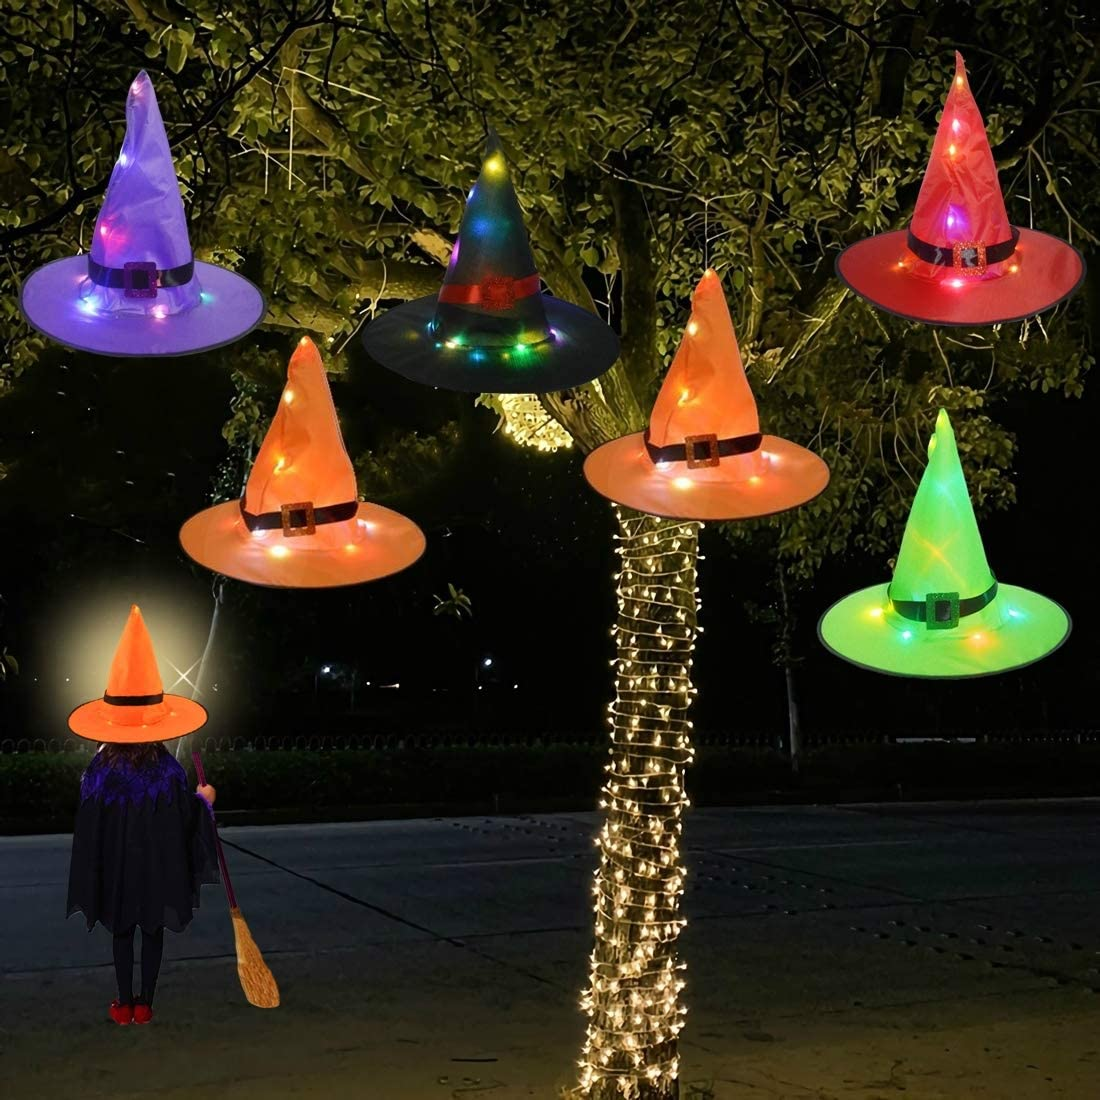 Halloween 2020 Witch With Kid Lawn Decorations Halloween Decorations Witch Hat Outdoor 6Pcs Hanging Lighted